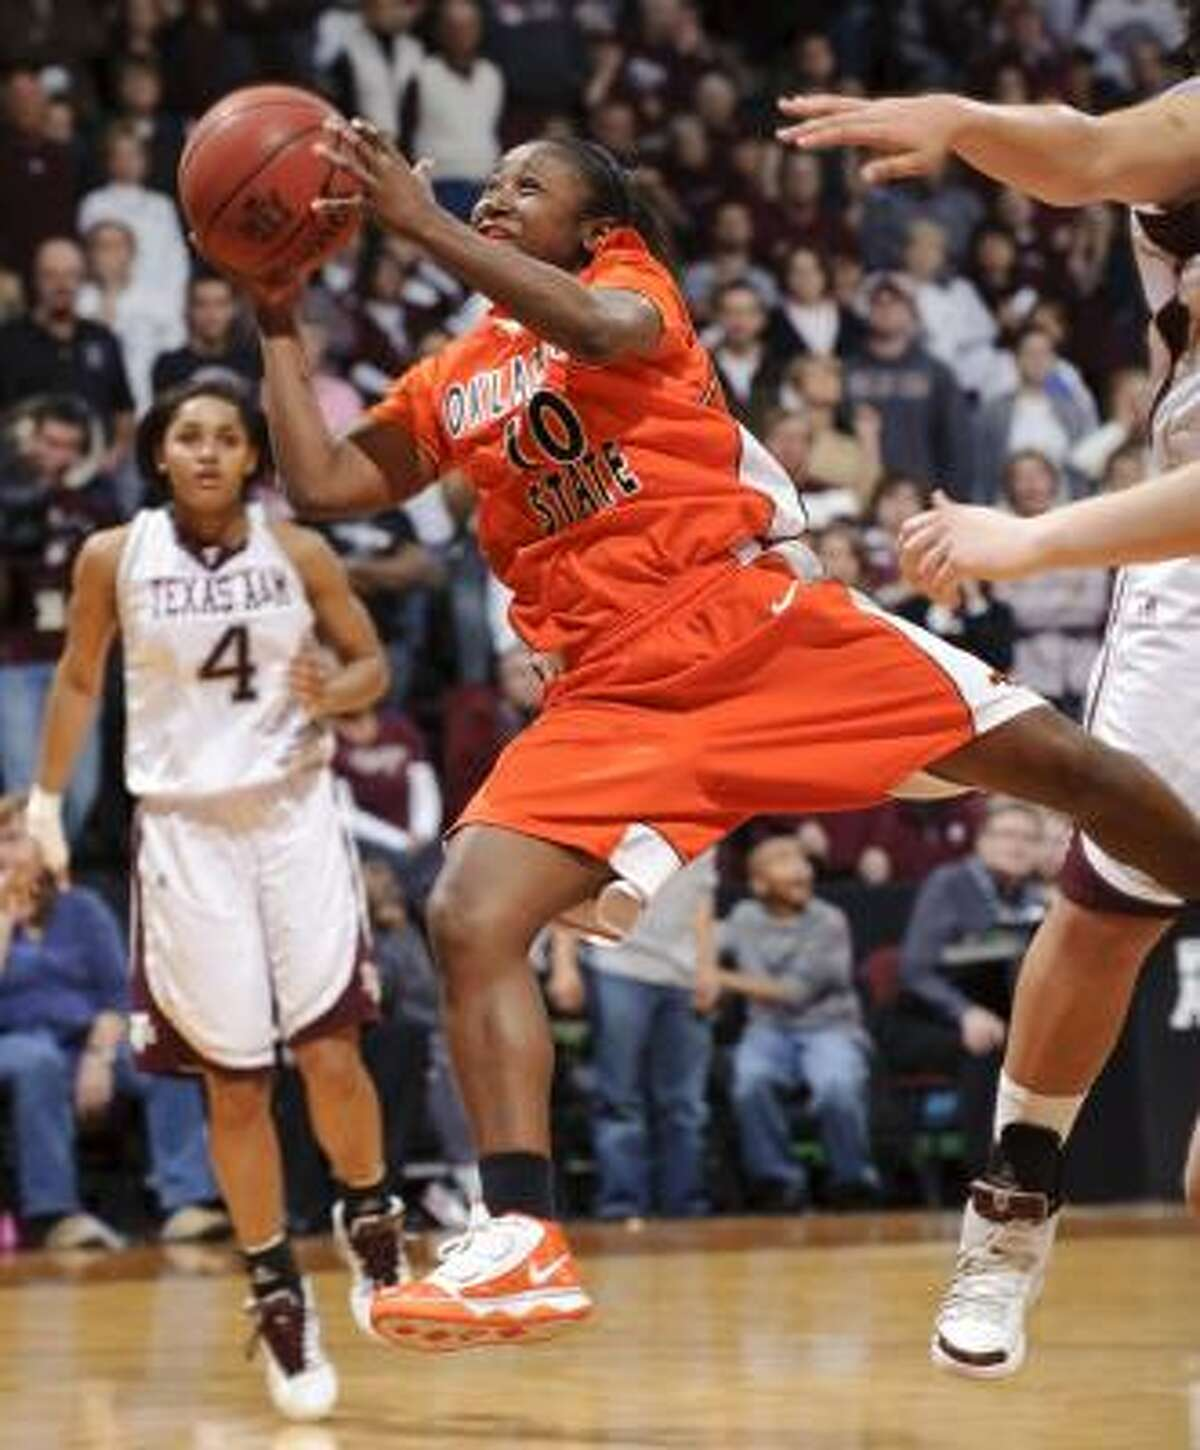 Oklahoma State's Andrea Riley scored 31 points for the Cowgirls.